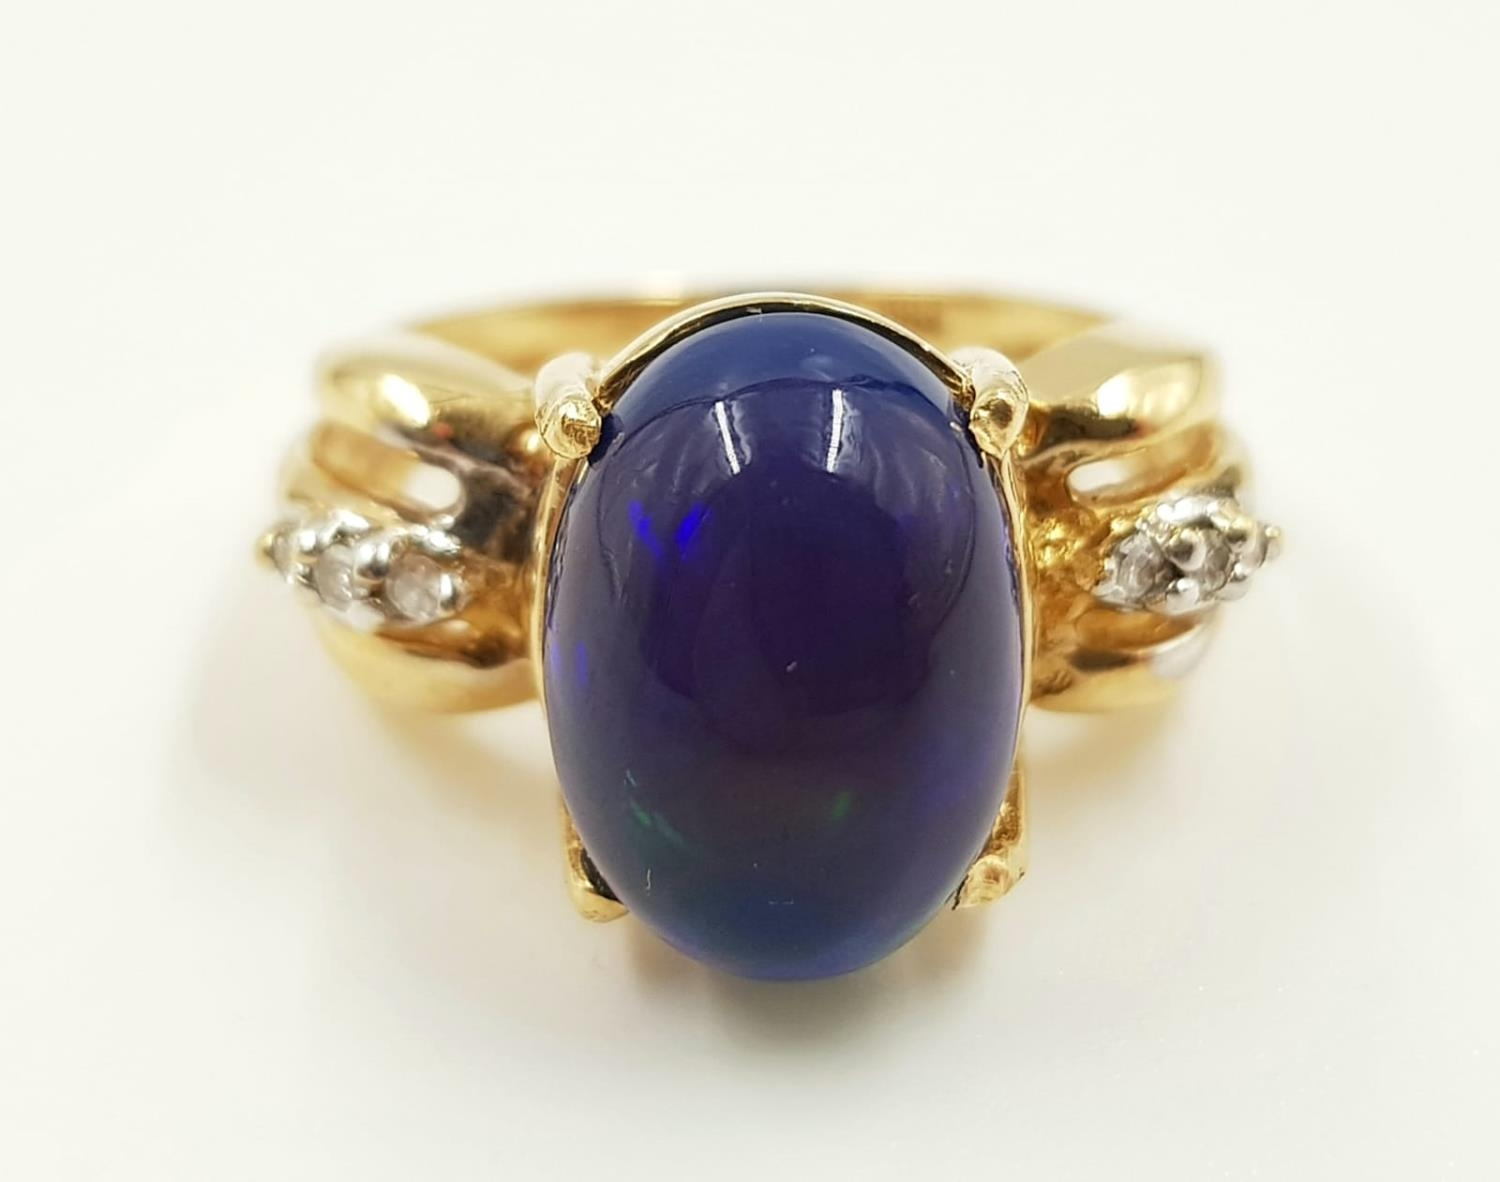 A 14ct gold, opal and diamond ring. 5g total weight and is size M. - Image 2 of 4